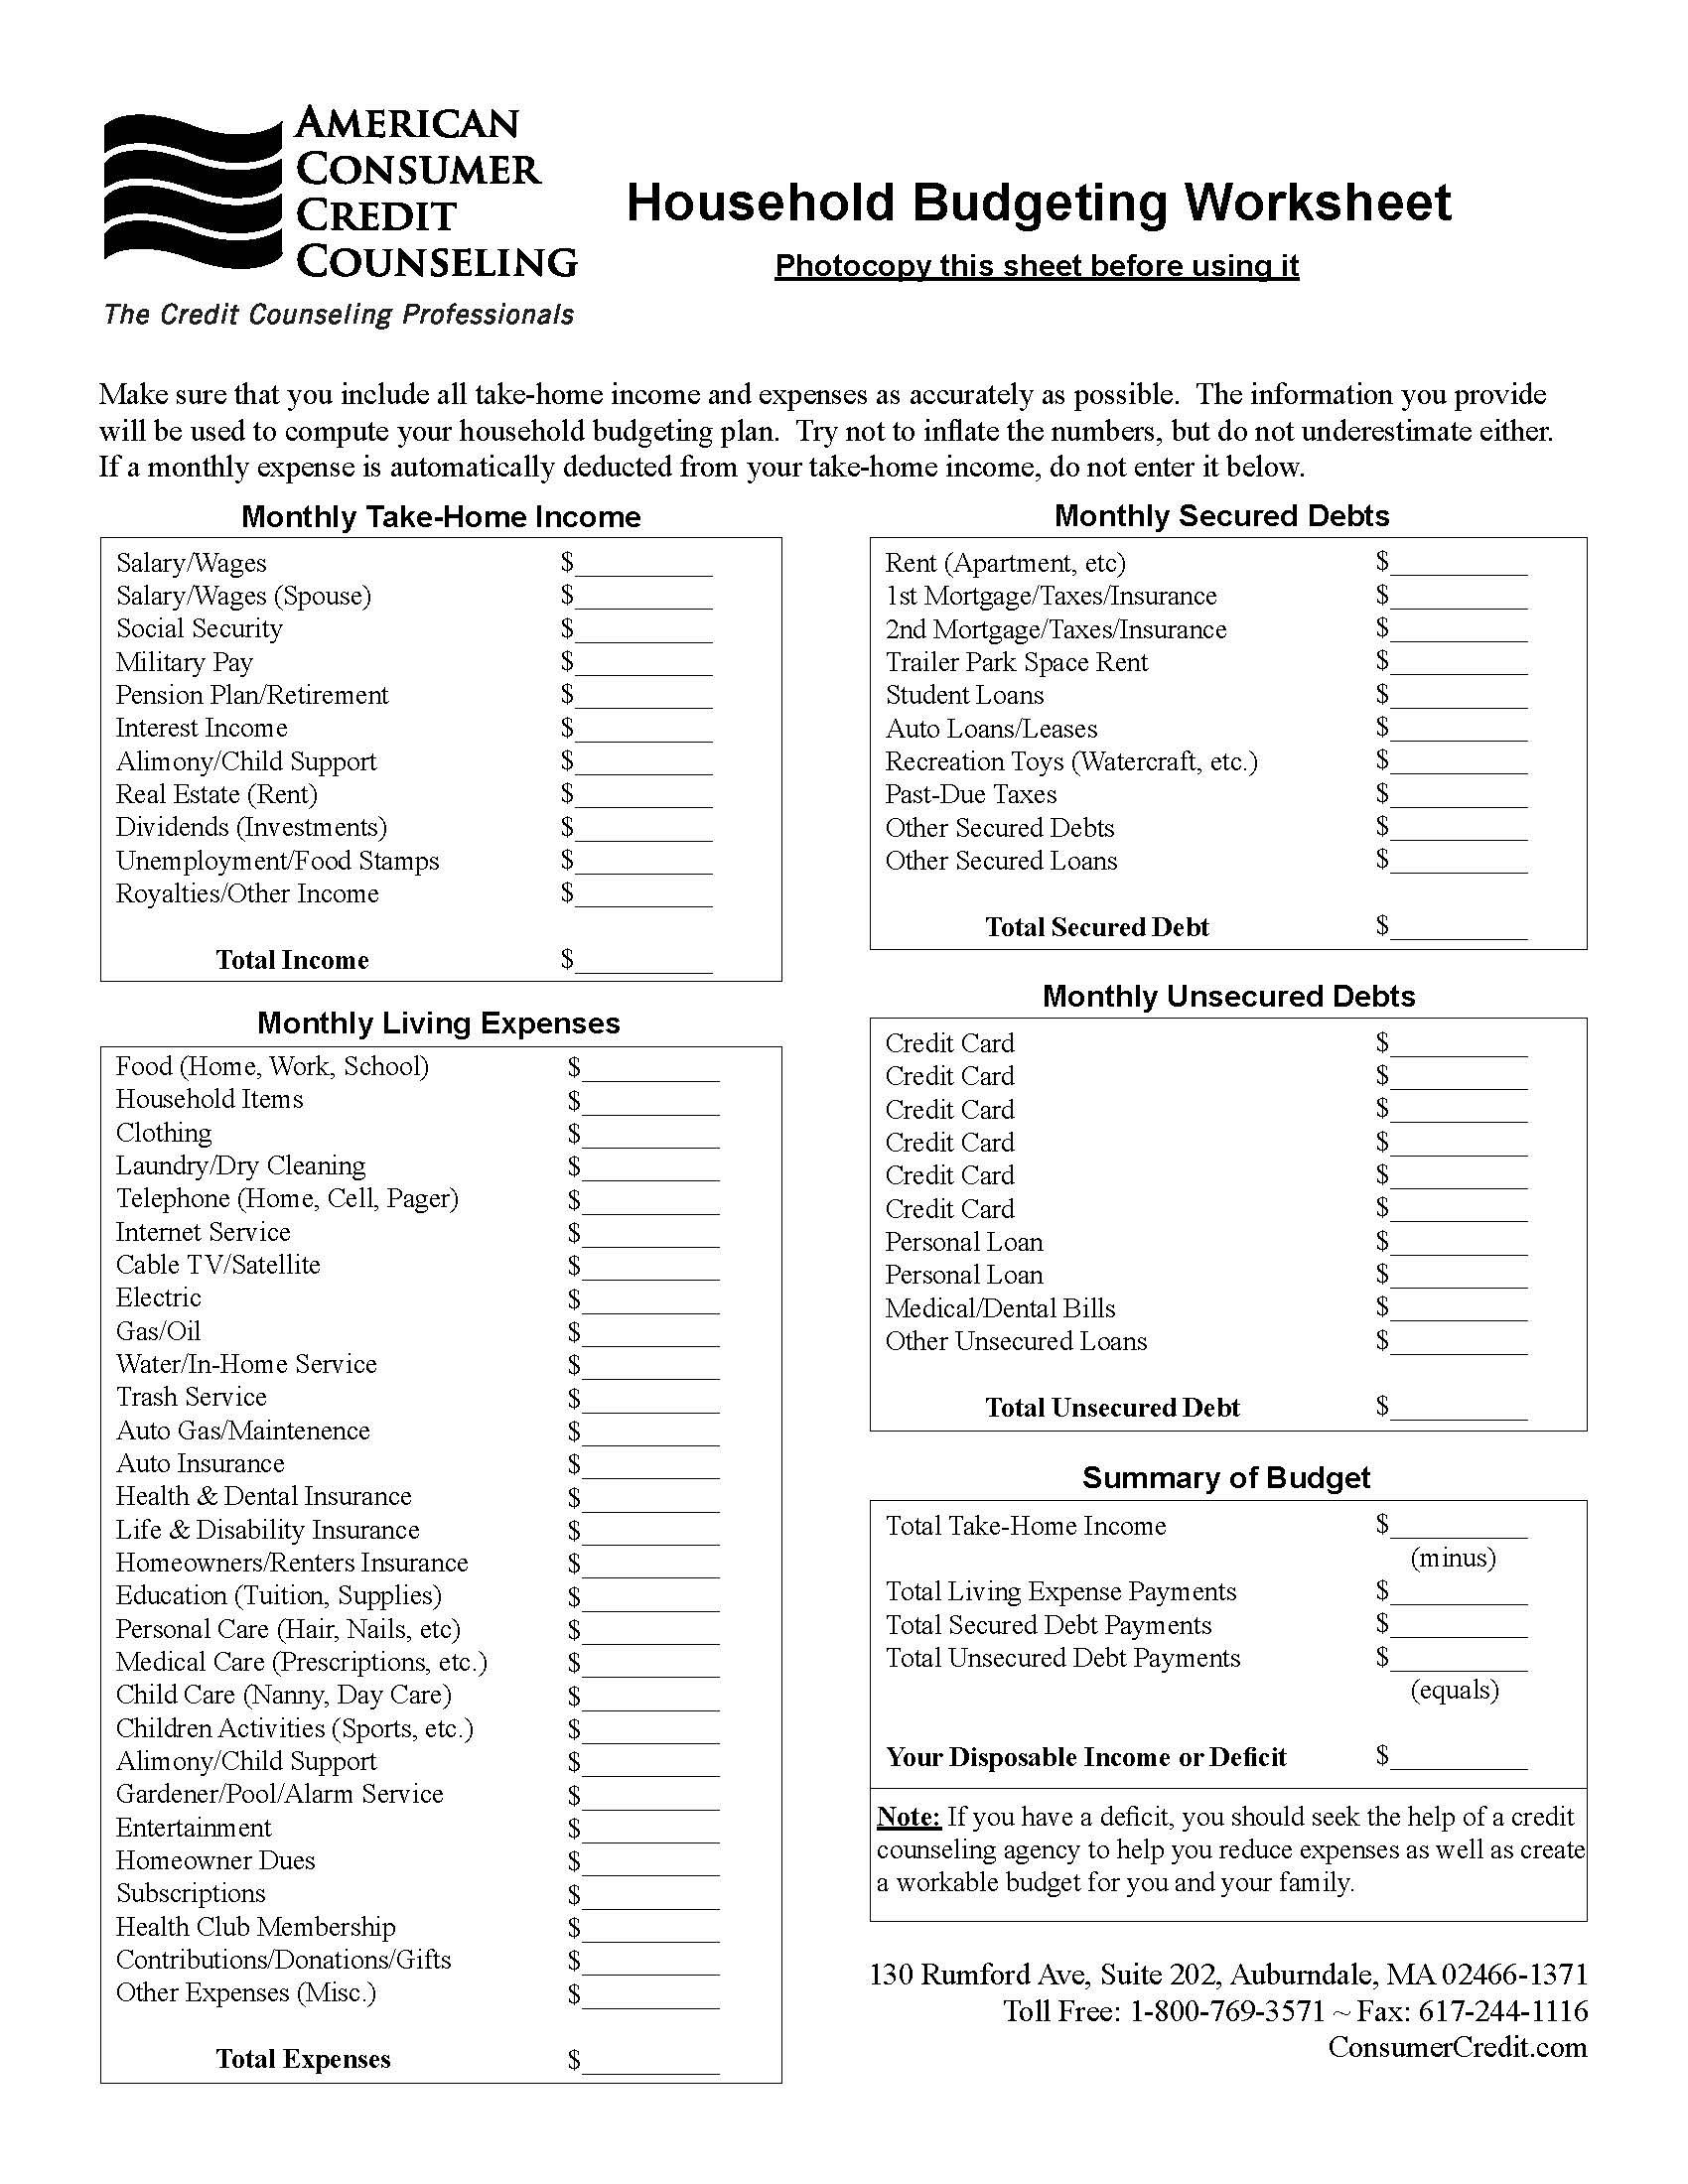 Use This Household Budgeting Worksheet To Help You Get An